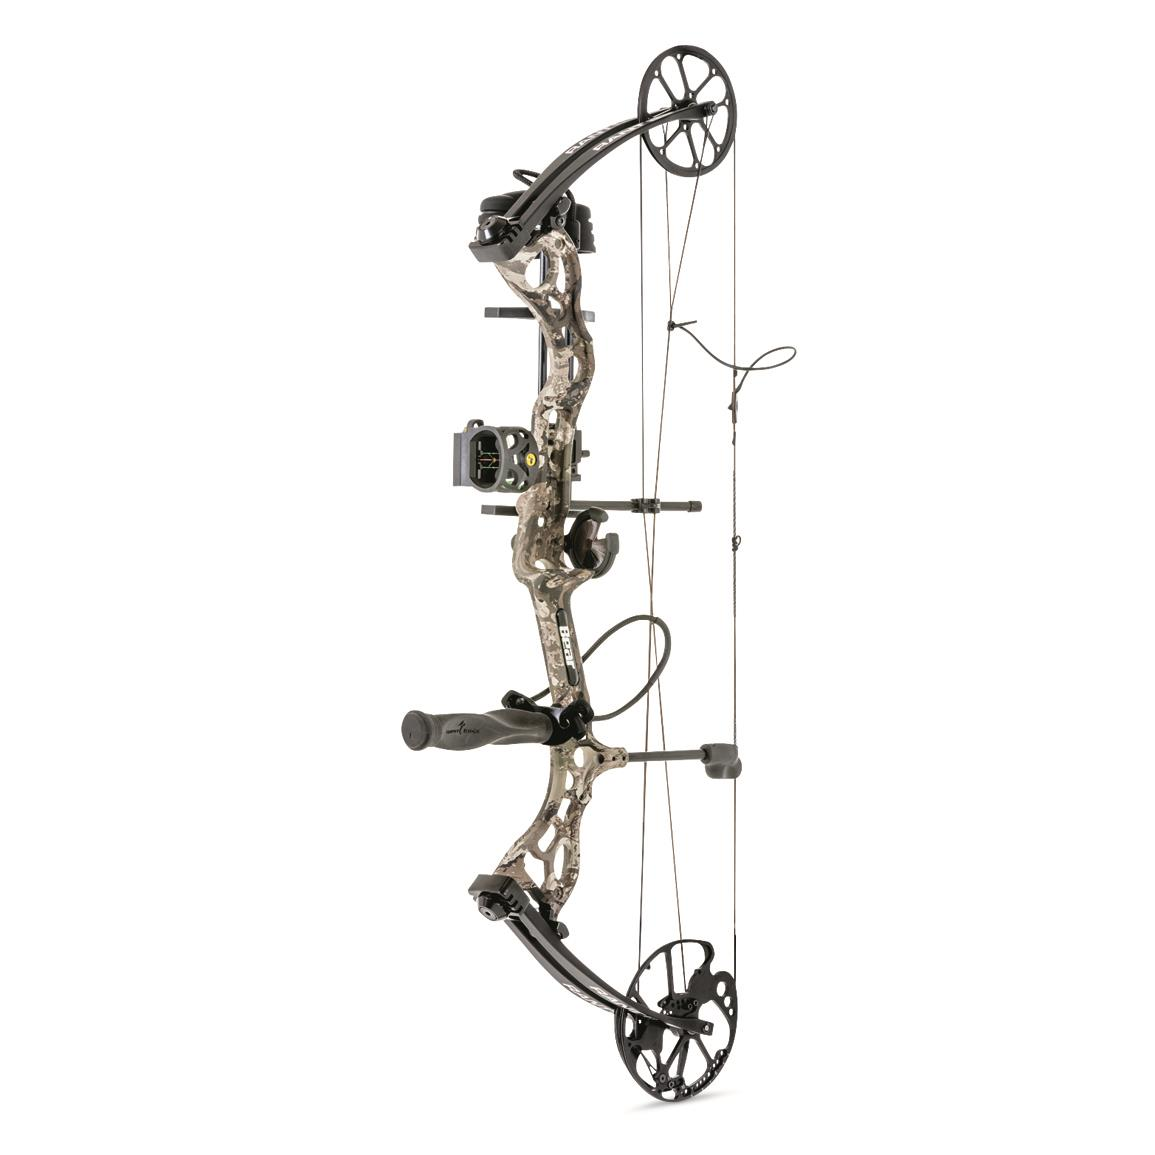 Bear Archery Rant Compound Bow Package, 50-70 lb. Draw, Veil Stoke